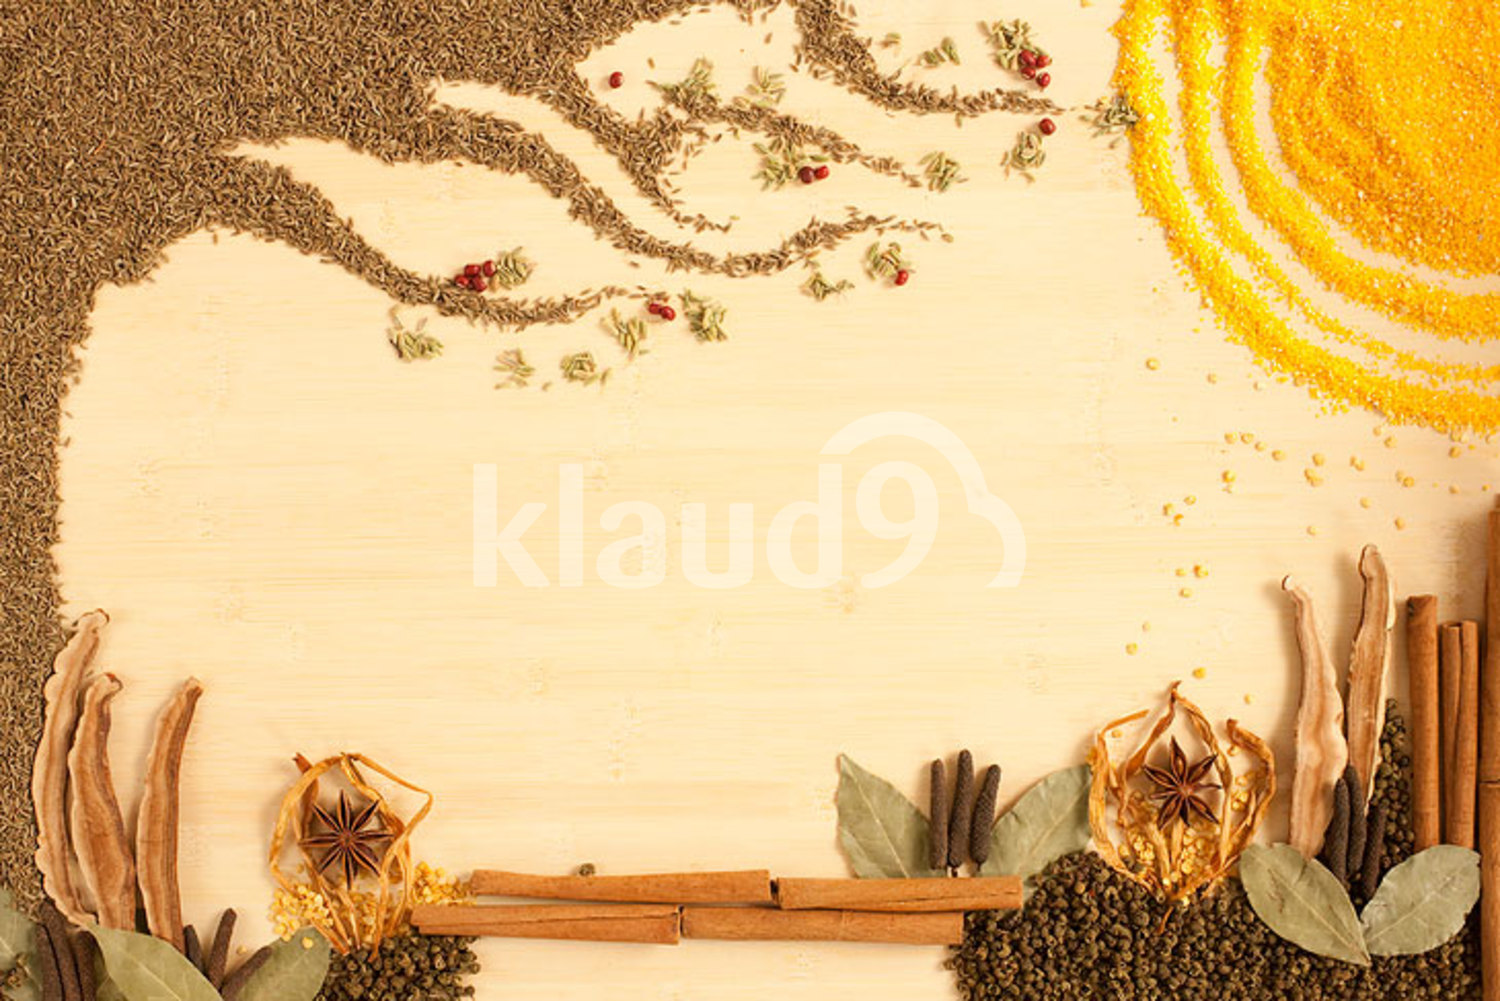 Creative painting made of different spices